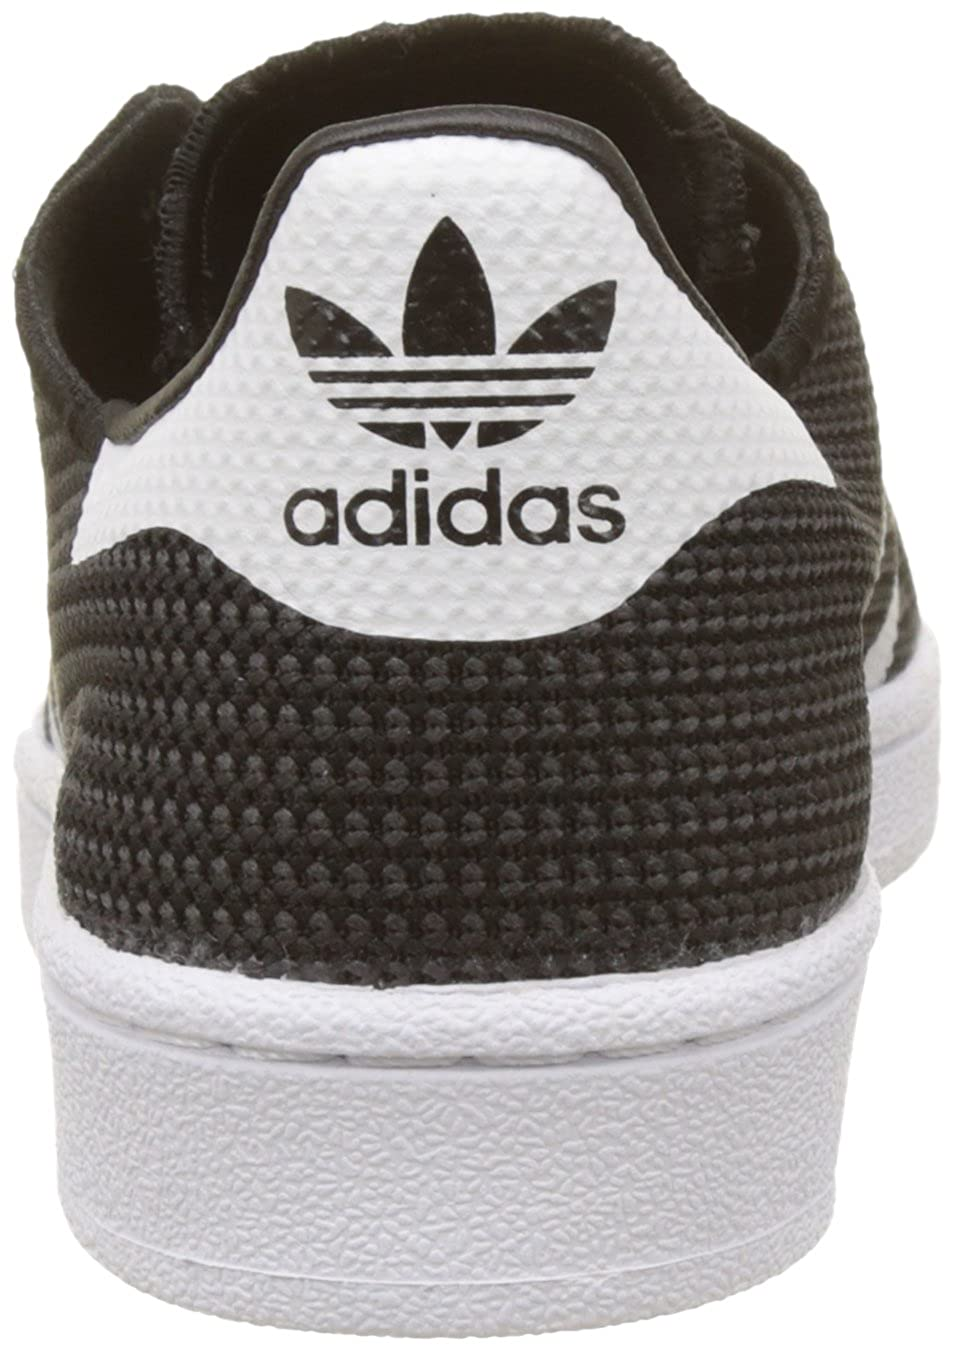 BZ0351 Color: Black Superstar J adidas Size: 4.0